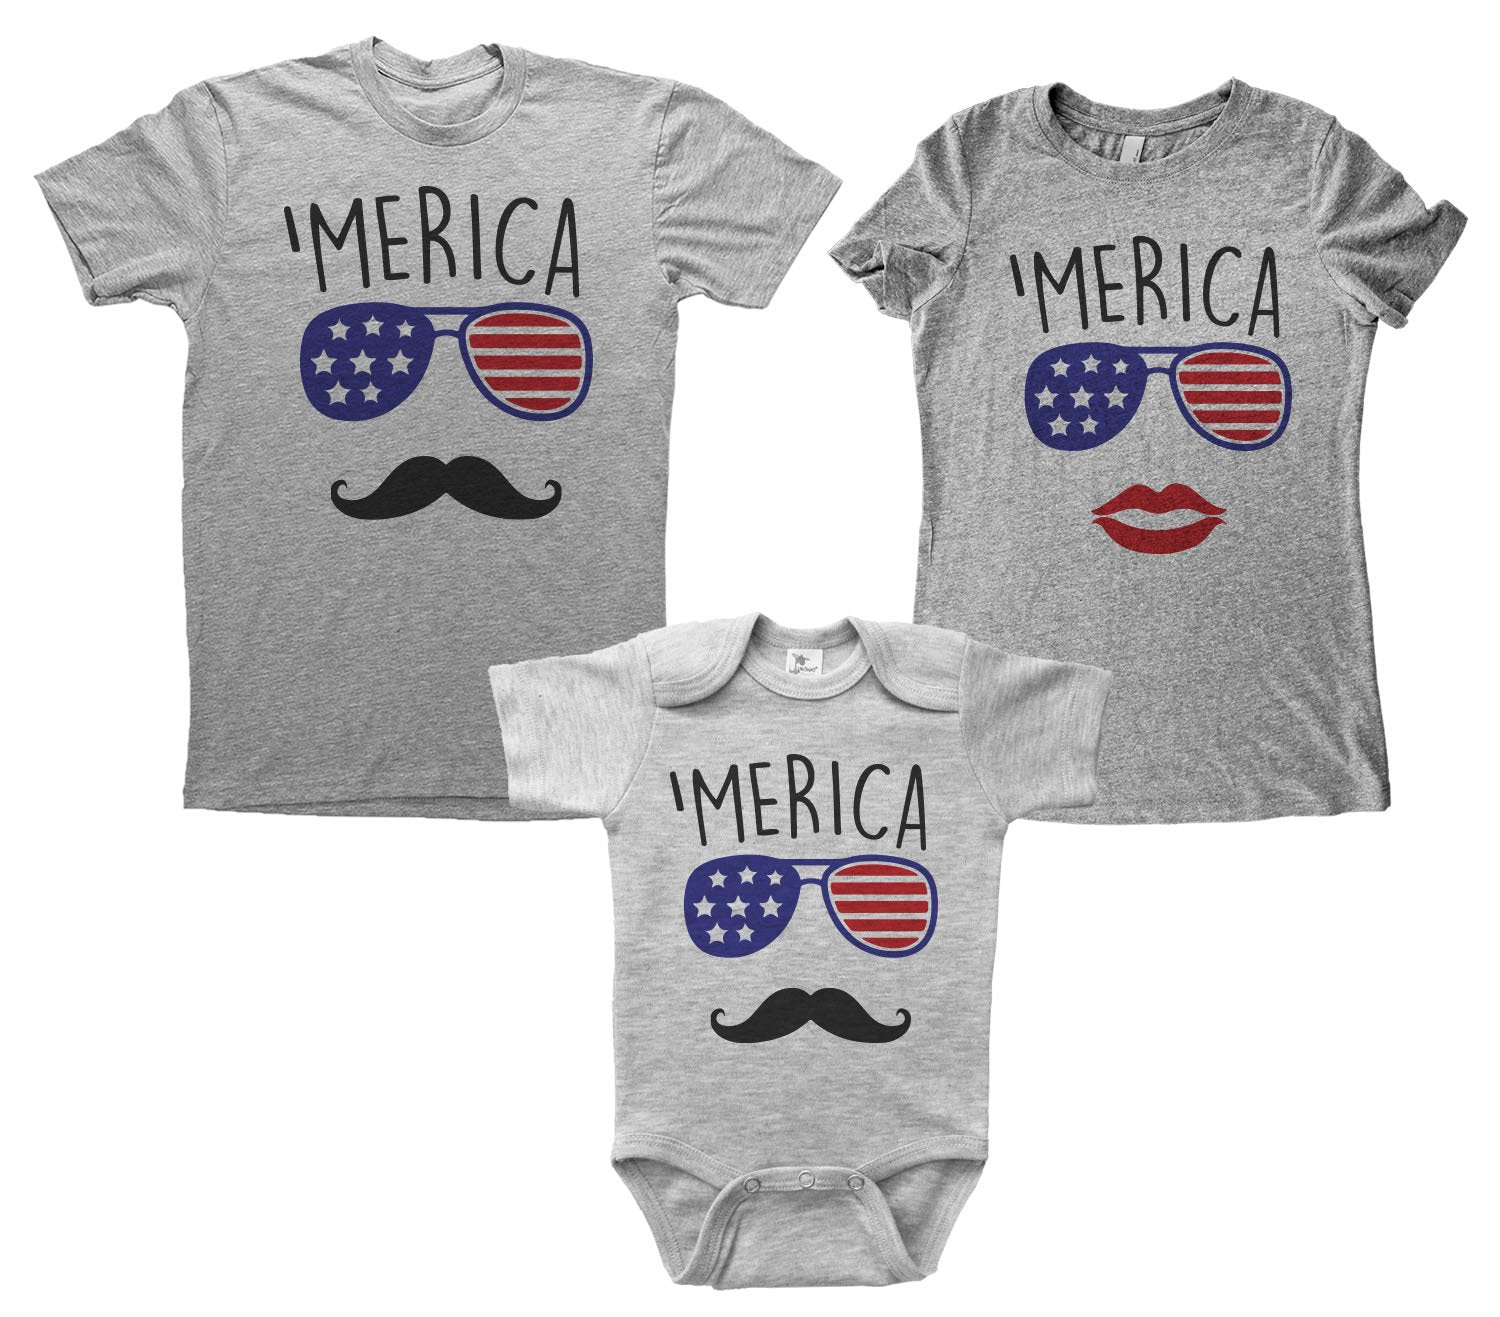 Grey Adult Tee Bundle with 'Merica Design with Aviator Sunglasses with american flag inside paired with mustache or red lips